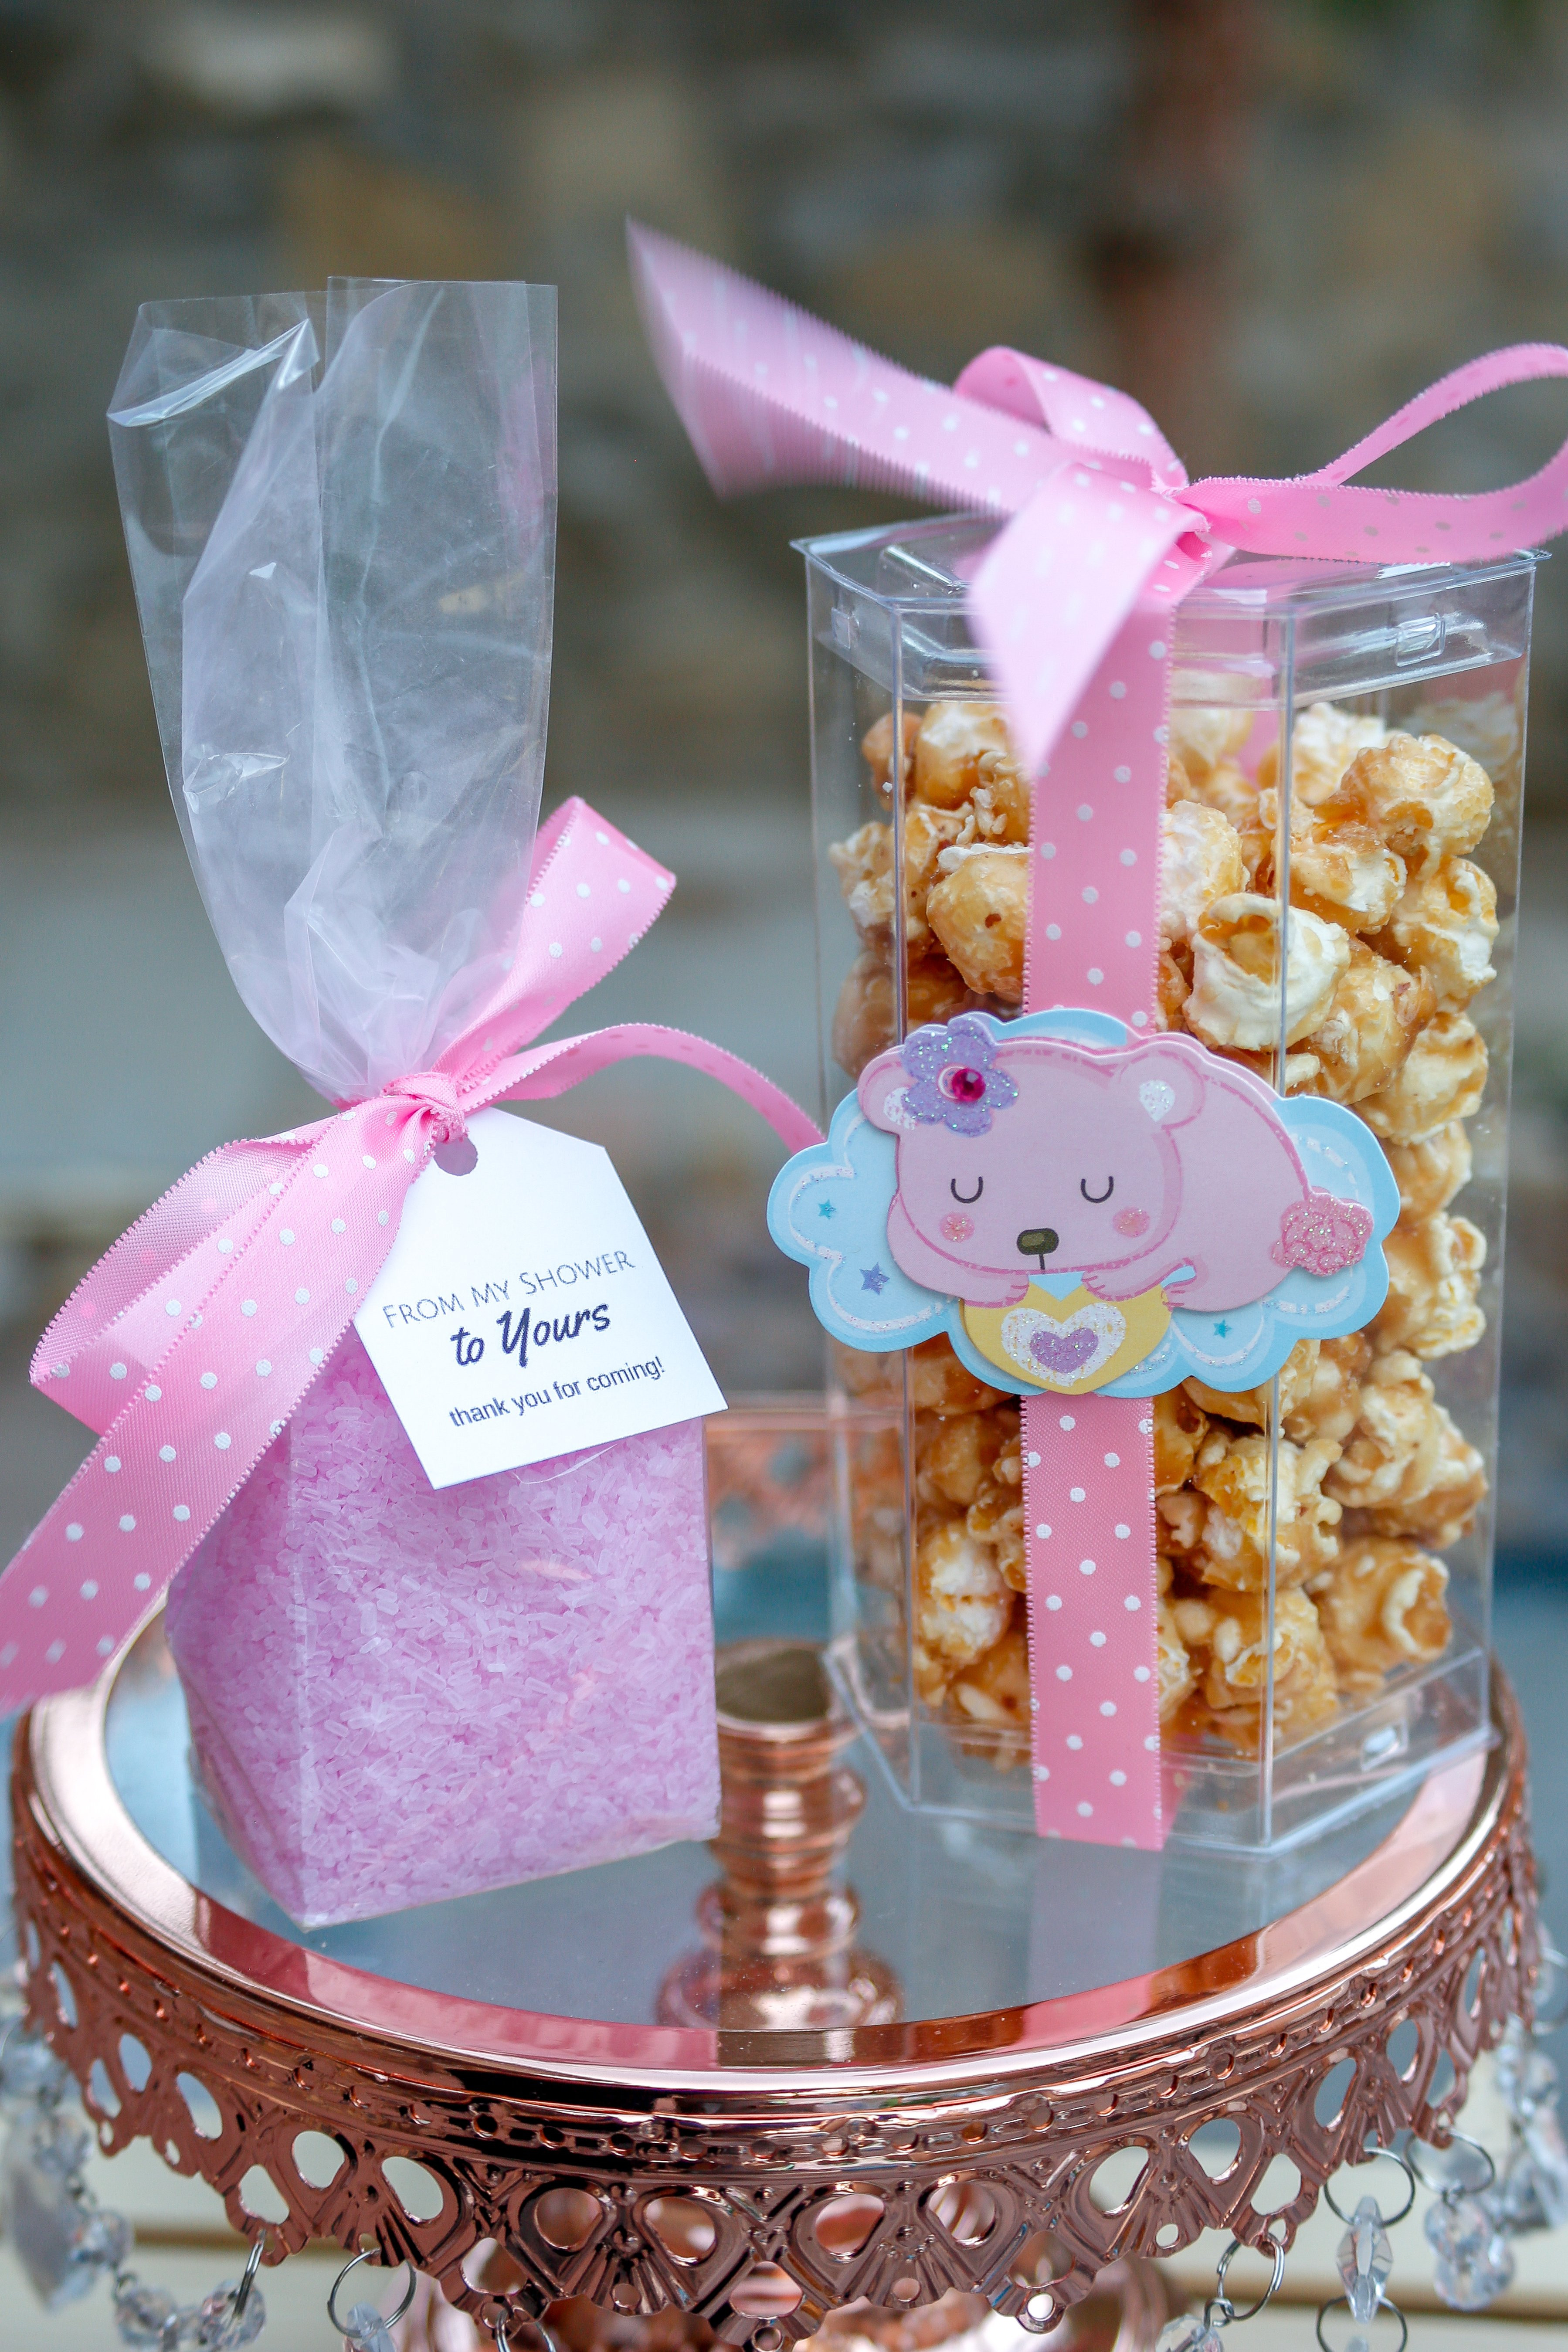 Best ideas about Baby Shower Favors DIY . Save or Pin DIY Baby Shower Favor Ideas Now.